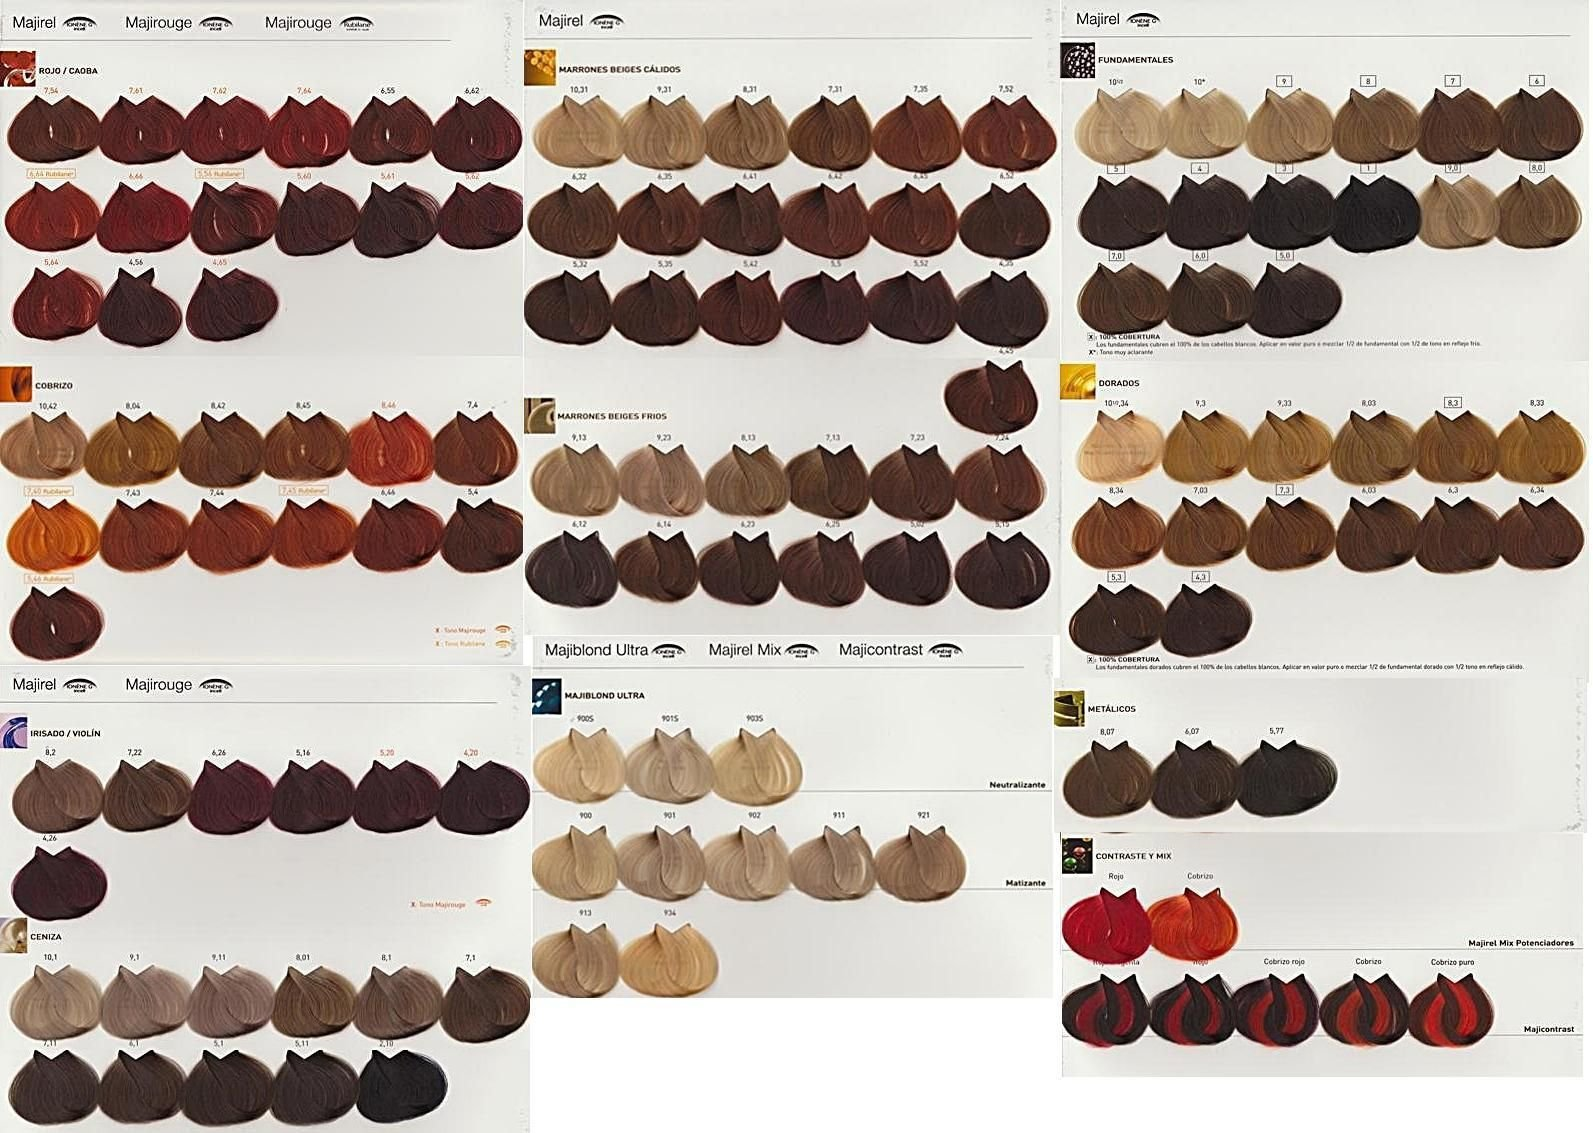 The Best Inoa Color 7 Hair Color Formulas With Inoa Pinterest Pictures